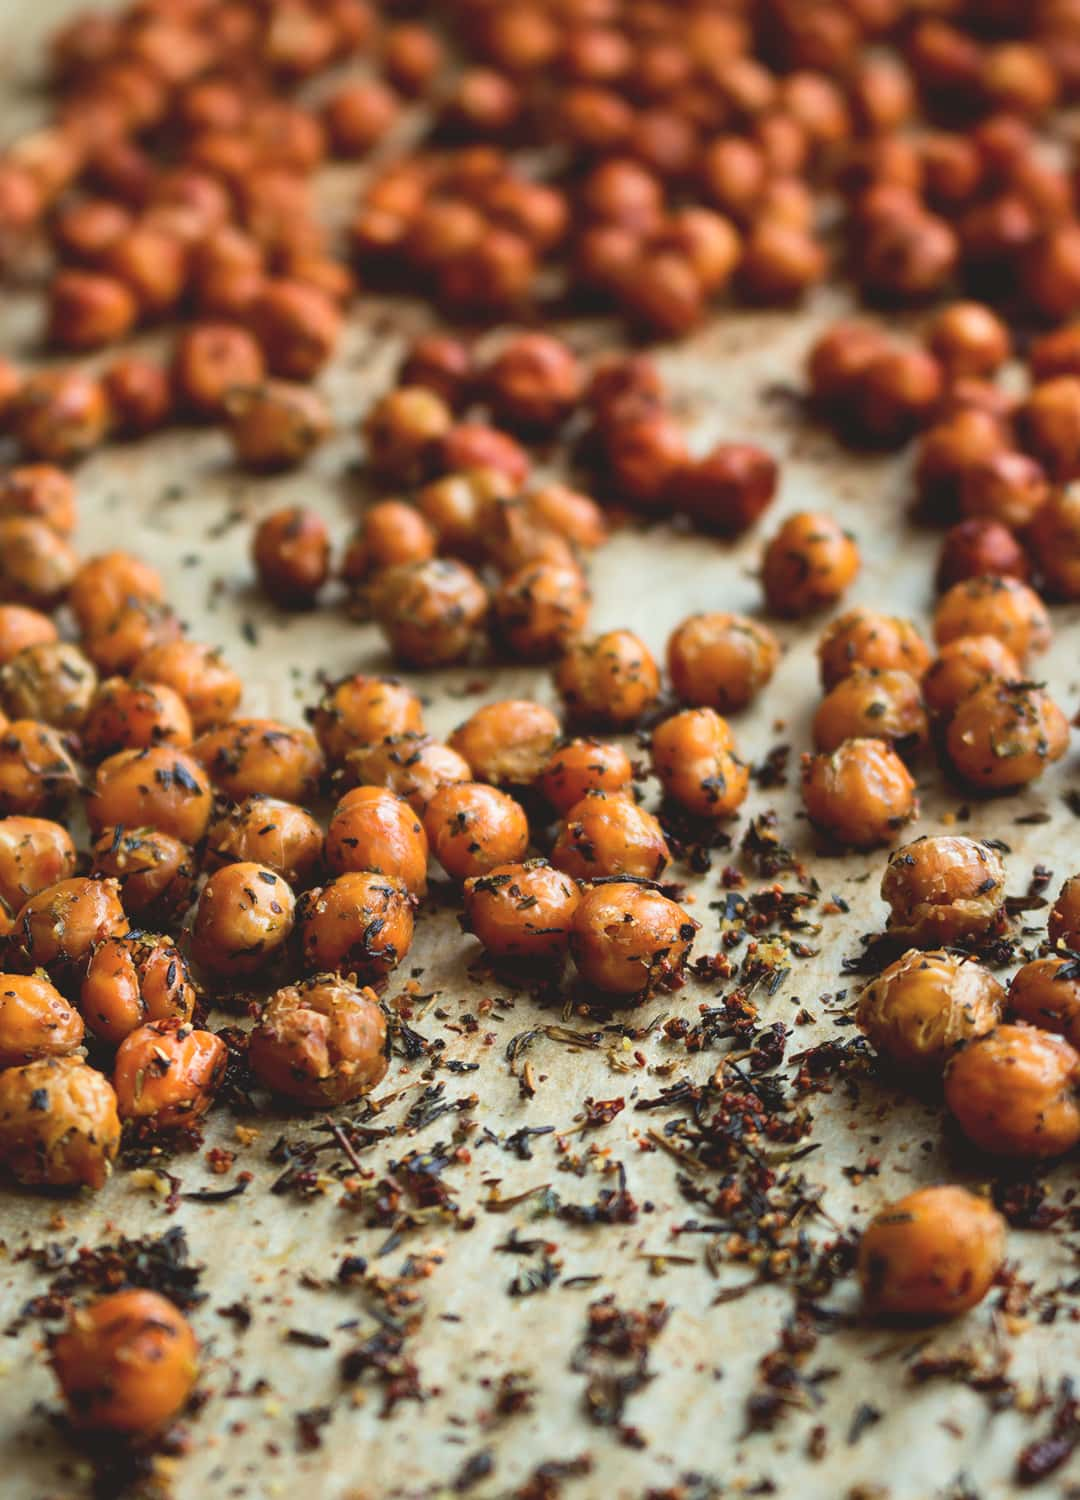 Crunchy Chickpeas 2 ways - healthy snack full of protein! You won't believe how easy it is to make! Full of amazing nurturing ingredients, you'll never eat store bought salty snacks again! Vegan, GF | thehealthfulideas.com